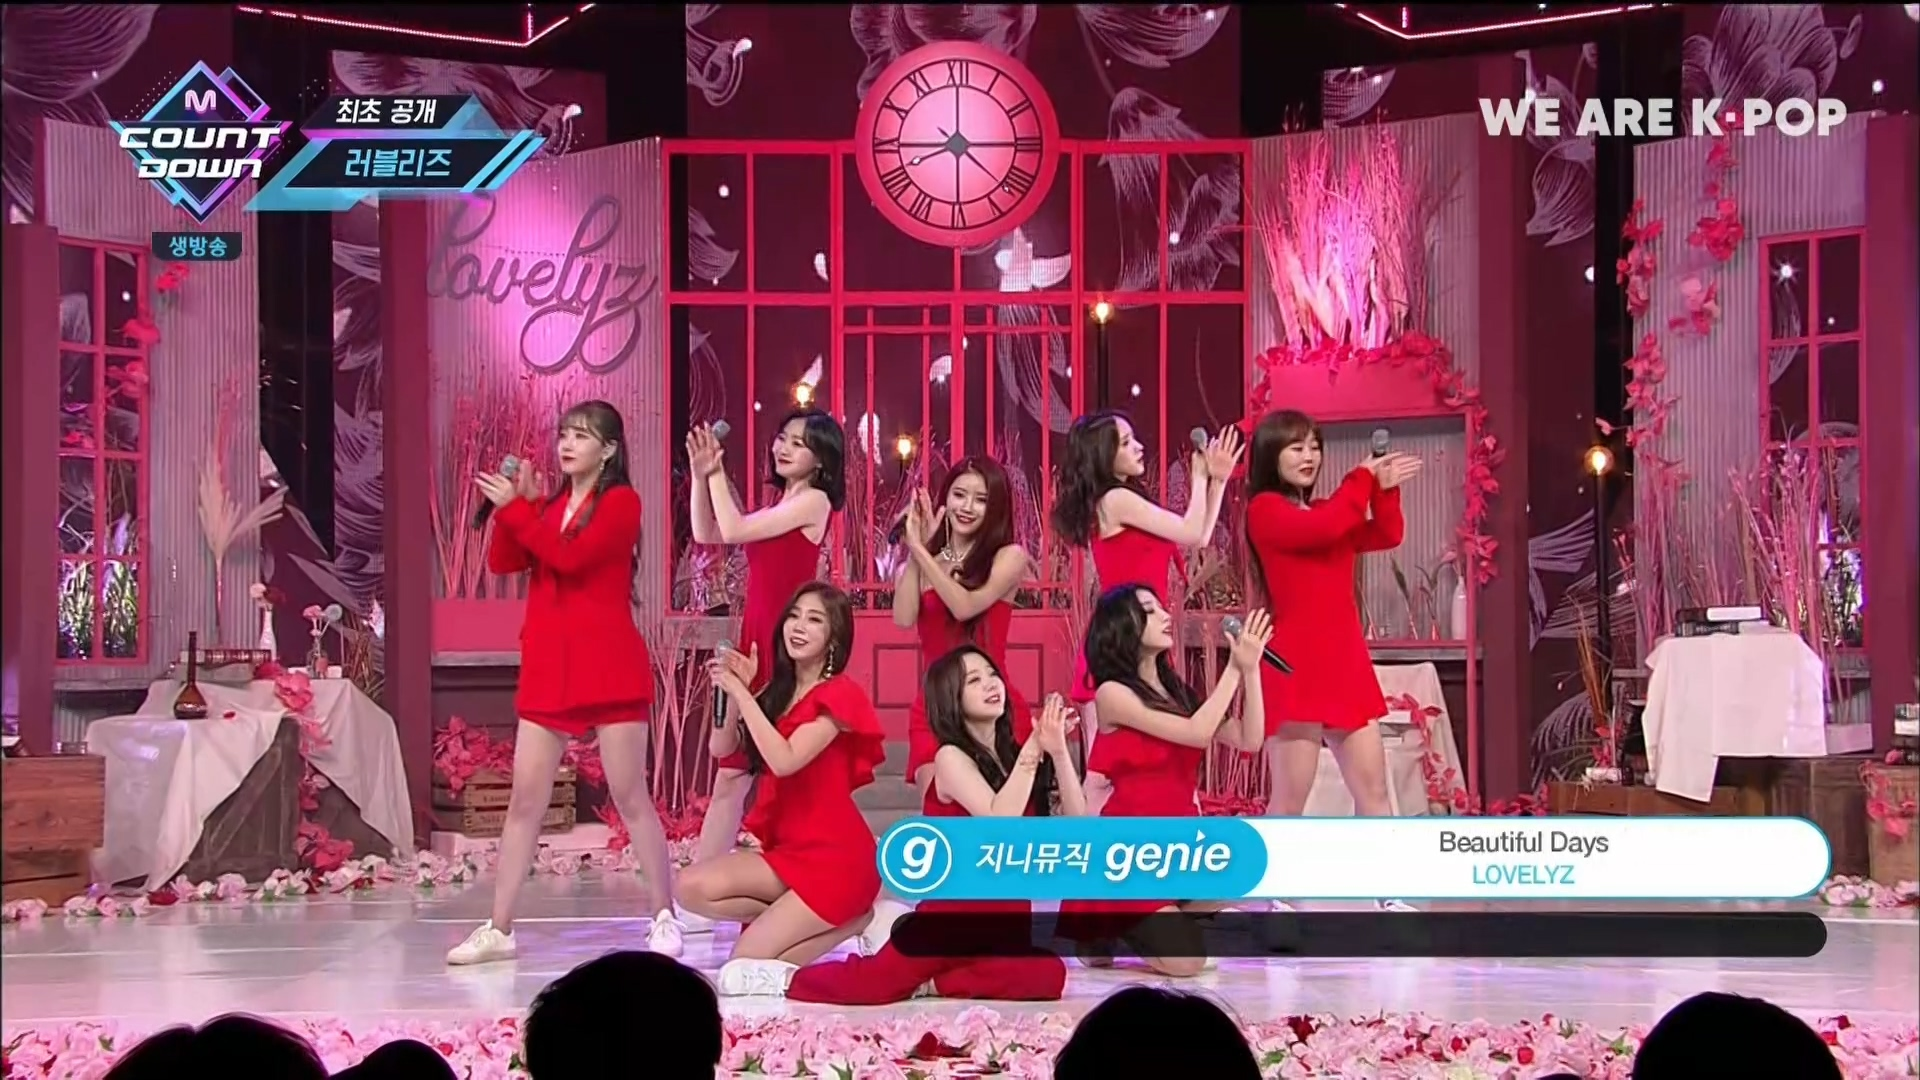 190523 Mnet M! Countdown LOVELYZ - Beautiful Days (1080i_kpopexciting.blogspot.c.jpg